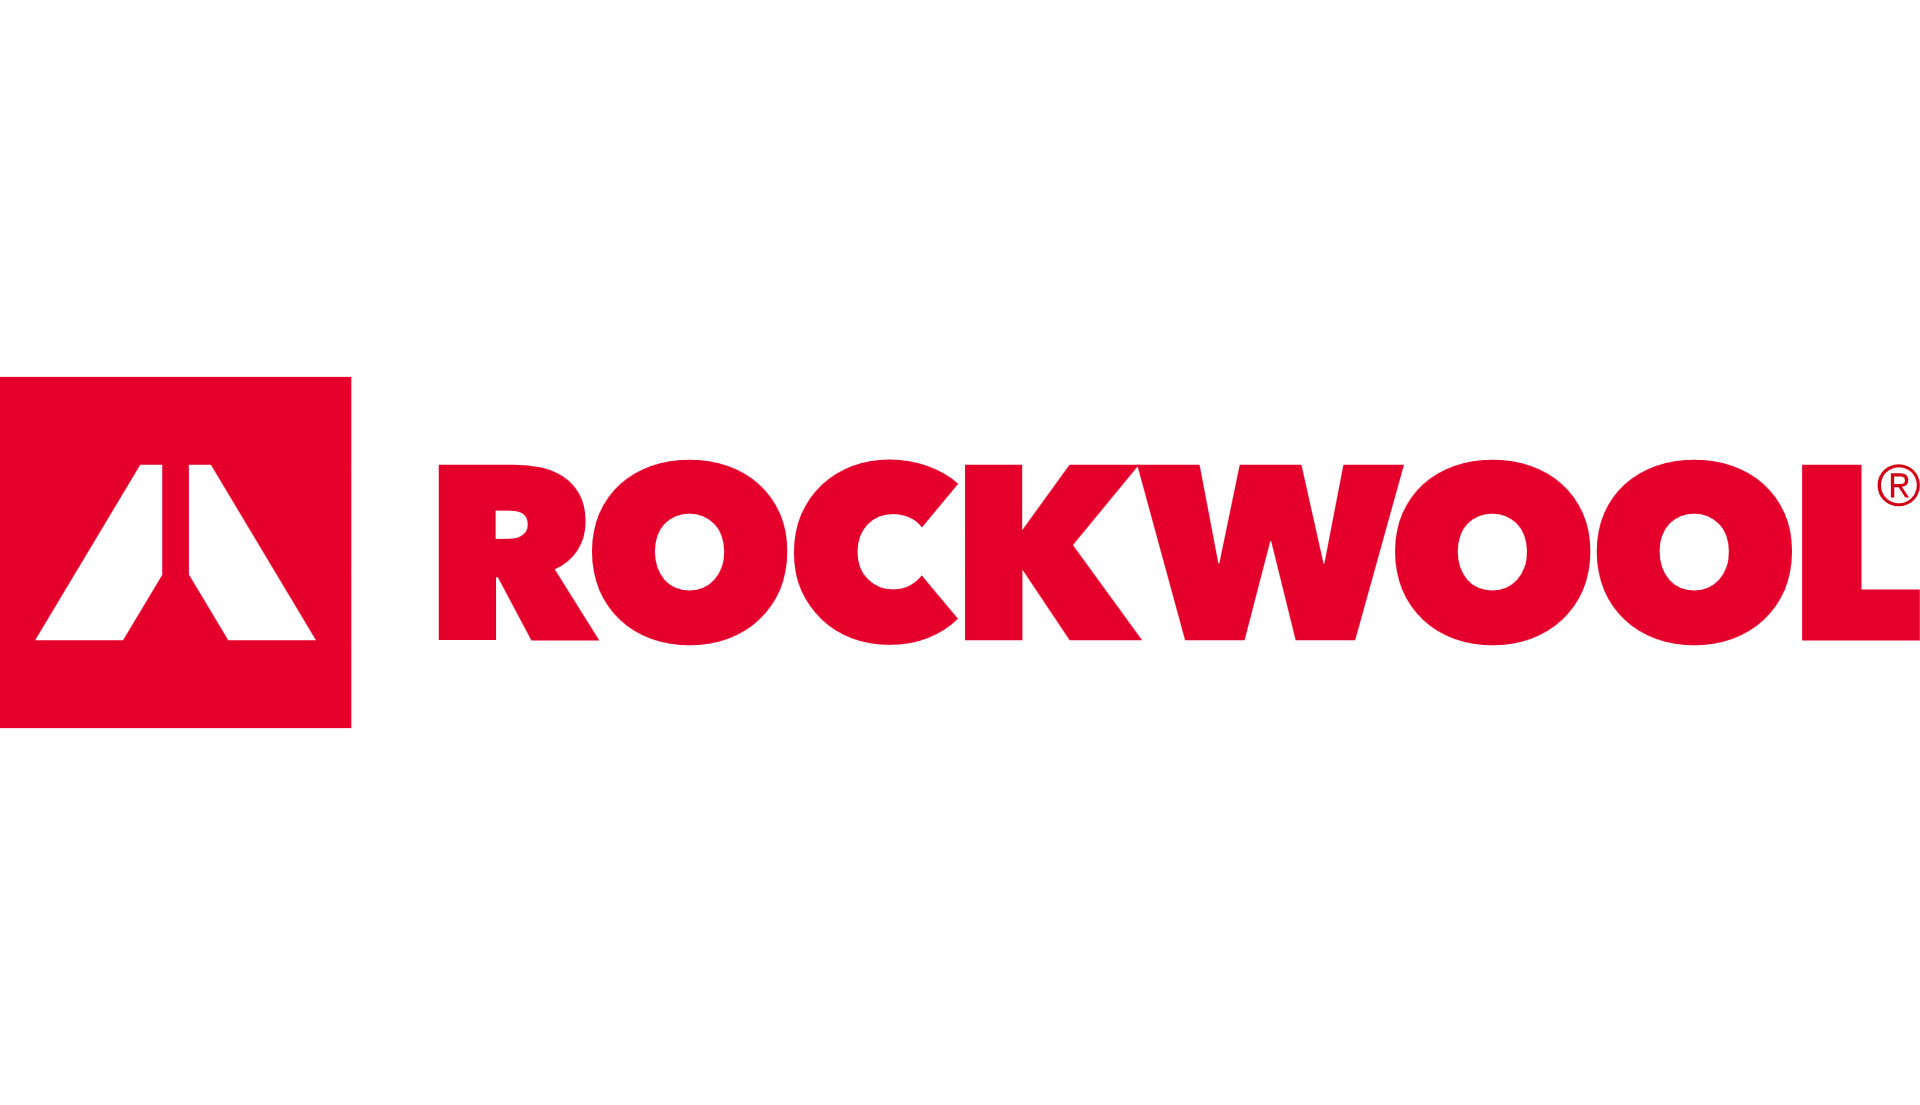 Rockwool - Information